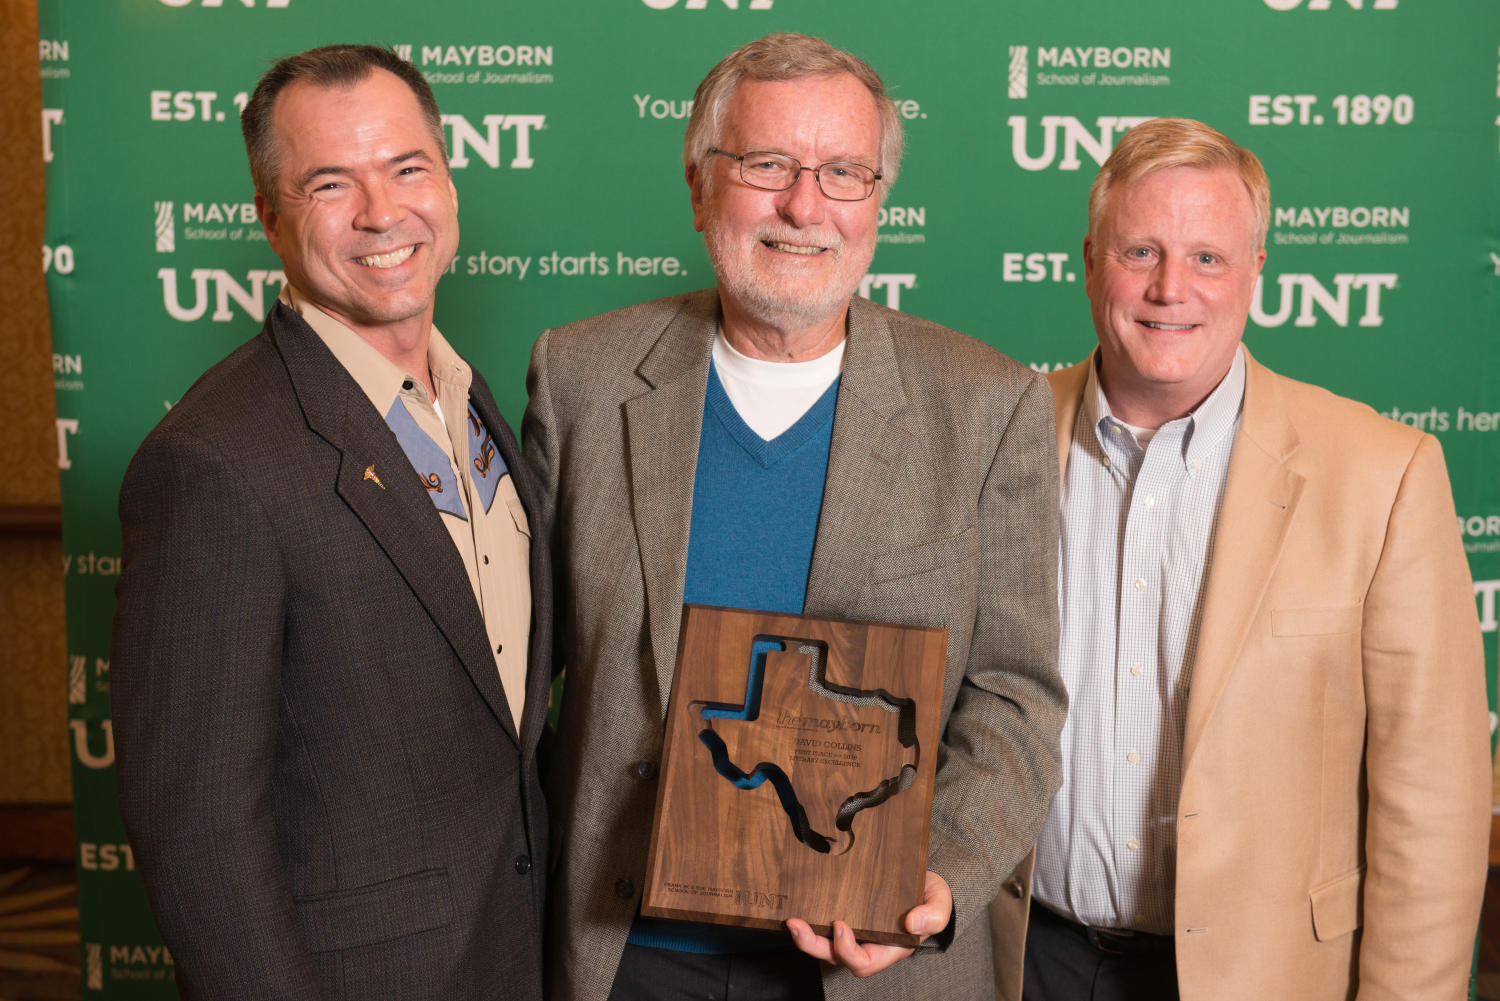 """[David Collins holding trophy with guests at Literary Lights Dinner], Photograph of David Collins standing with two guests in front of a UNT and Mayborn backdrop. He is holding the first place plaque for the Literary Excellence award, which he received for his book manuscript """"Accidental Texas Activists: Mark Phariss, Vic Holmes, and their Fight for Marriage Equality in the Lone Star State"""". The win granted him a provisional book contract with UNT Press and it was awarded to him at the Literary Lights Dinner during the Mayborn Literary Nonfiction Conference. The dinner was held in the International Ballroom at the Hilton DFW Lakes Executive Conference Center, Grapevine, TX.,"""